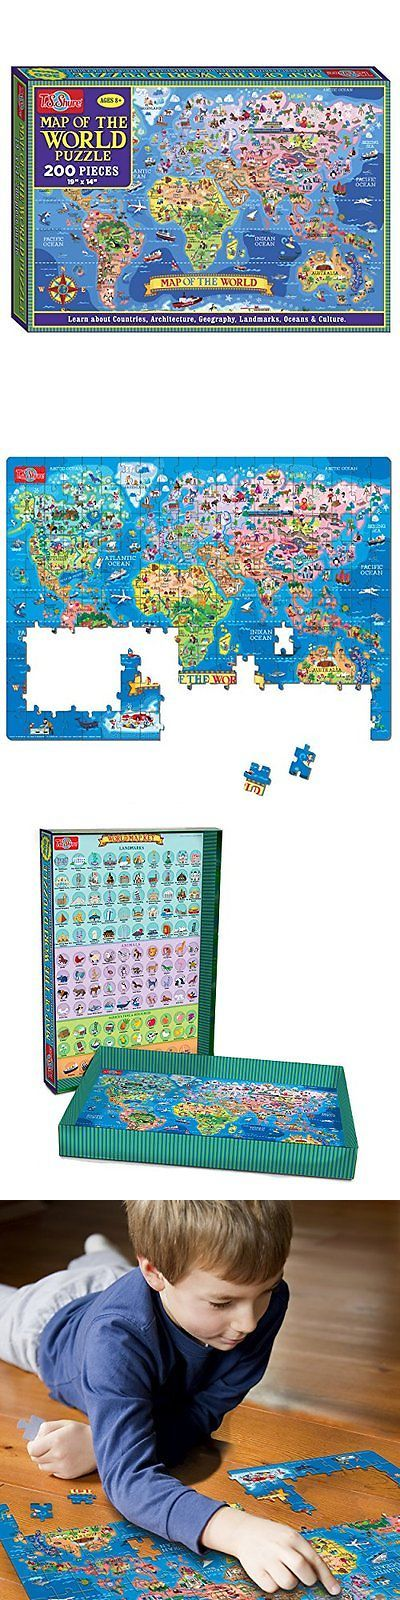 Jigsaw 19183: T.S. Shure Map Of The World Jigsaw Puzzle (200-Piece) New -> BUY IT NOW ONLY: $33.69 on eBay!